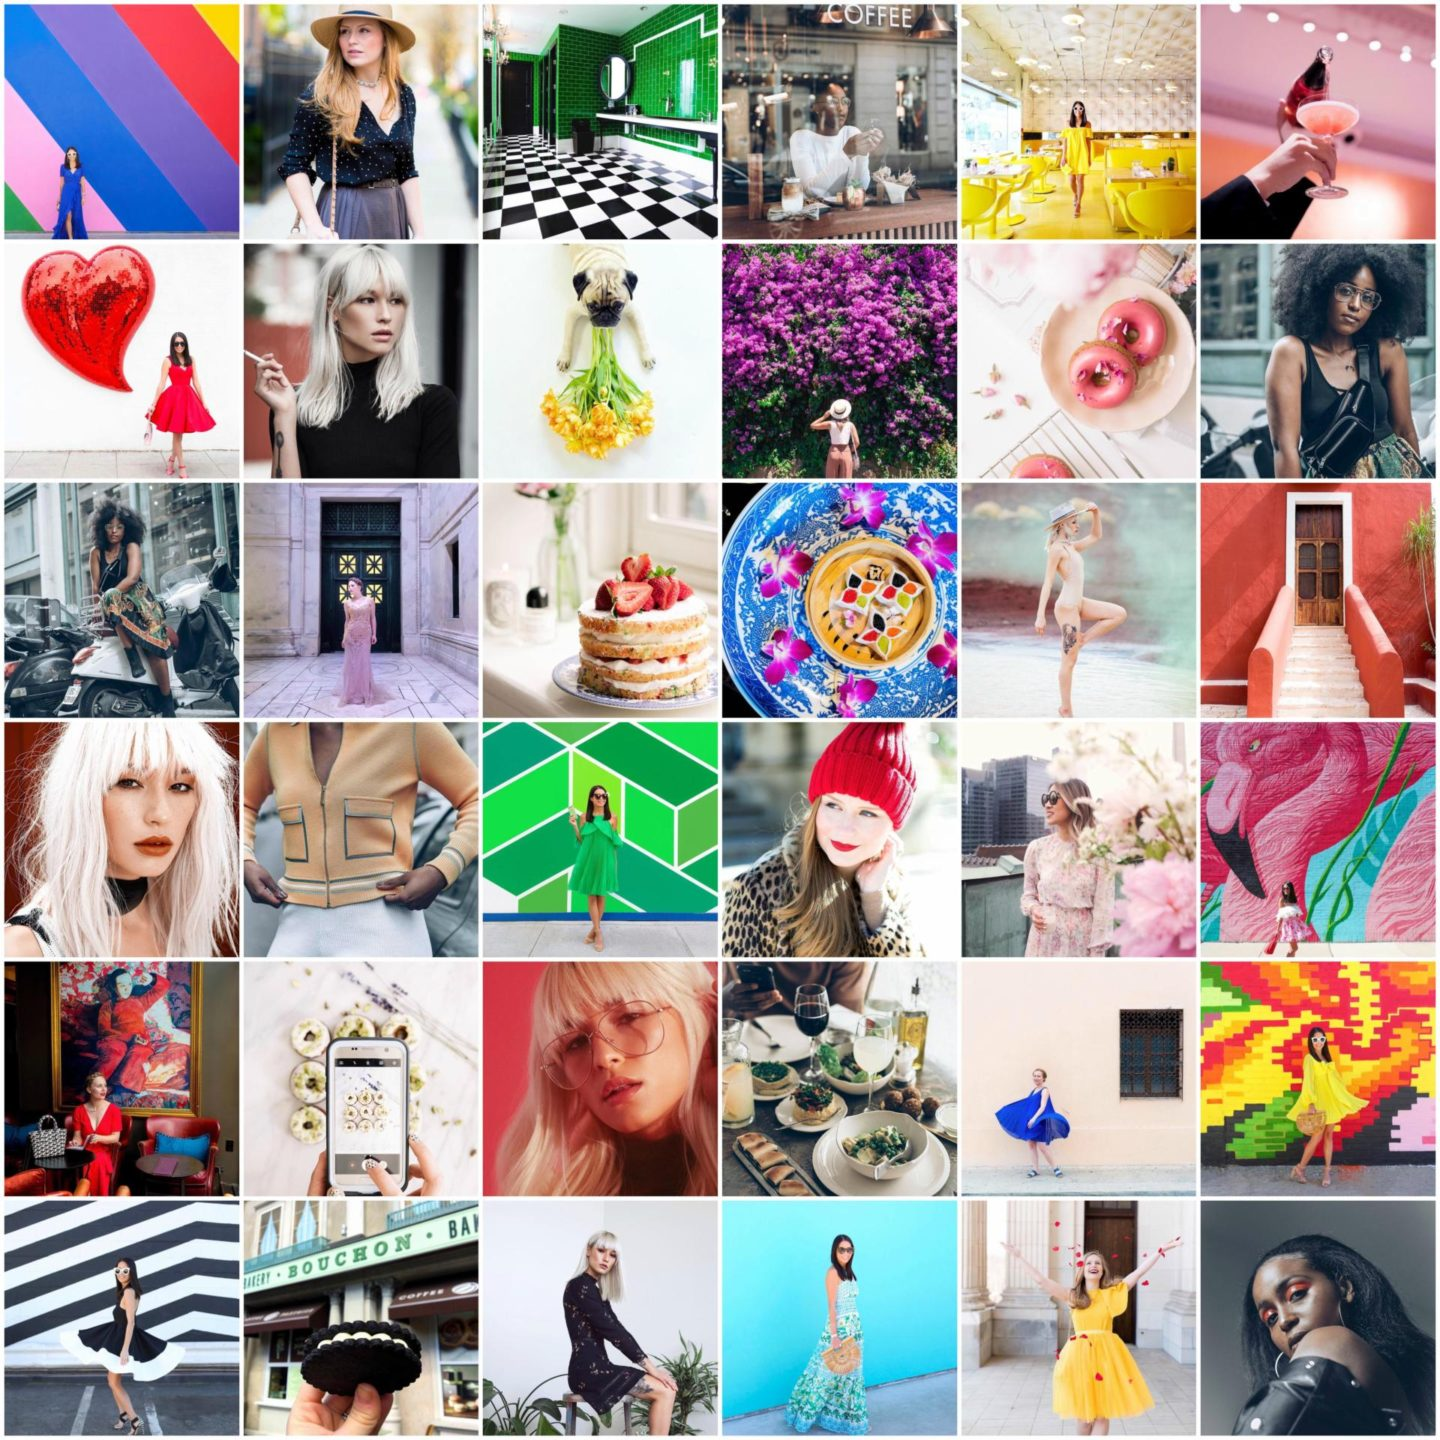 5 Instagram Accounts You Need To Follow Now